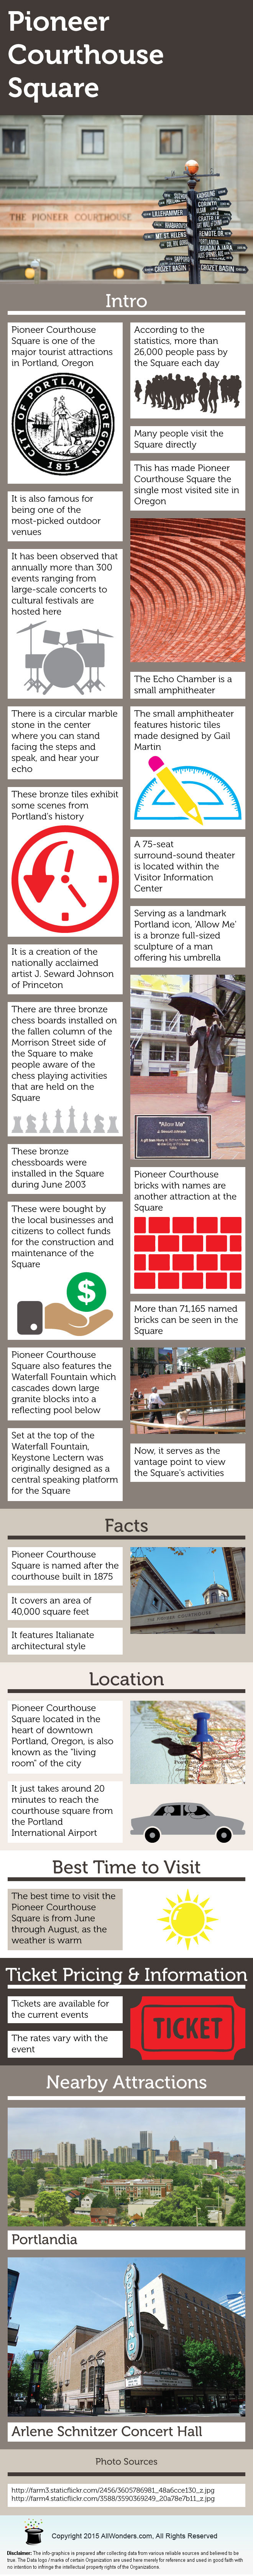 Pioneer Courthouse Square Infographic